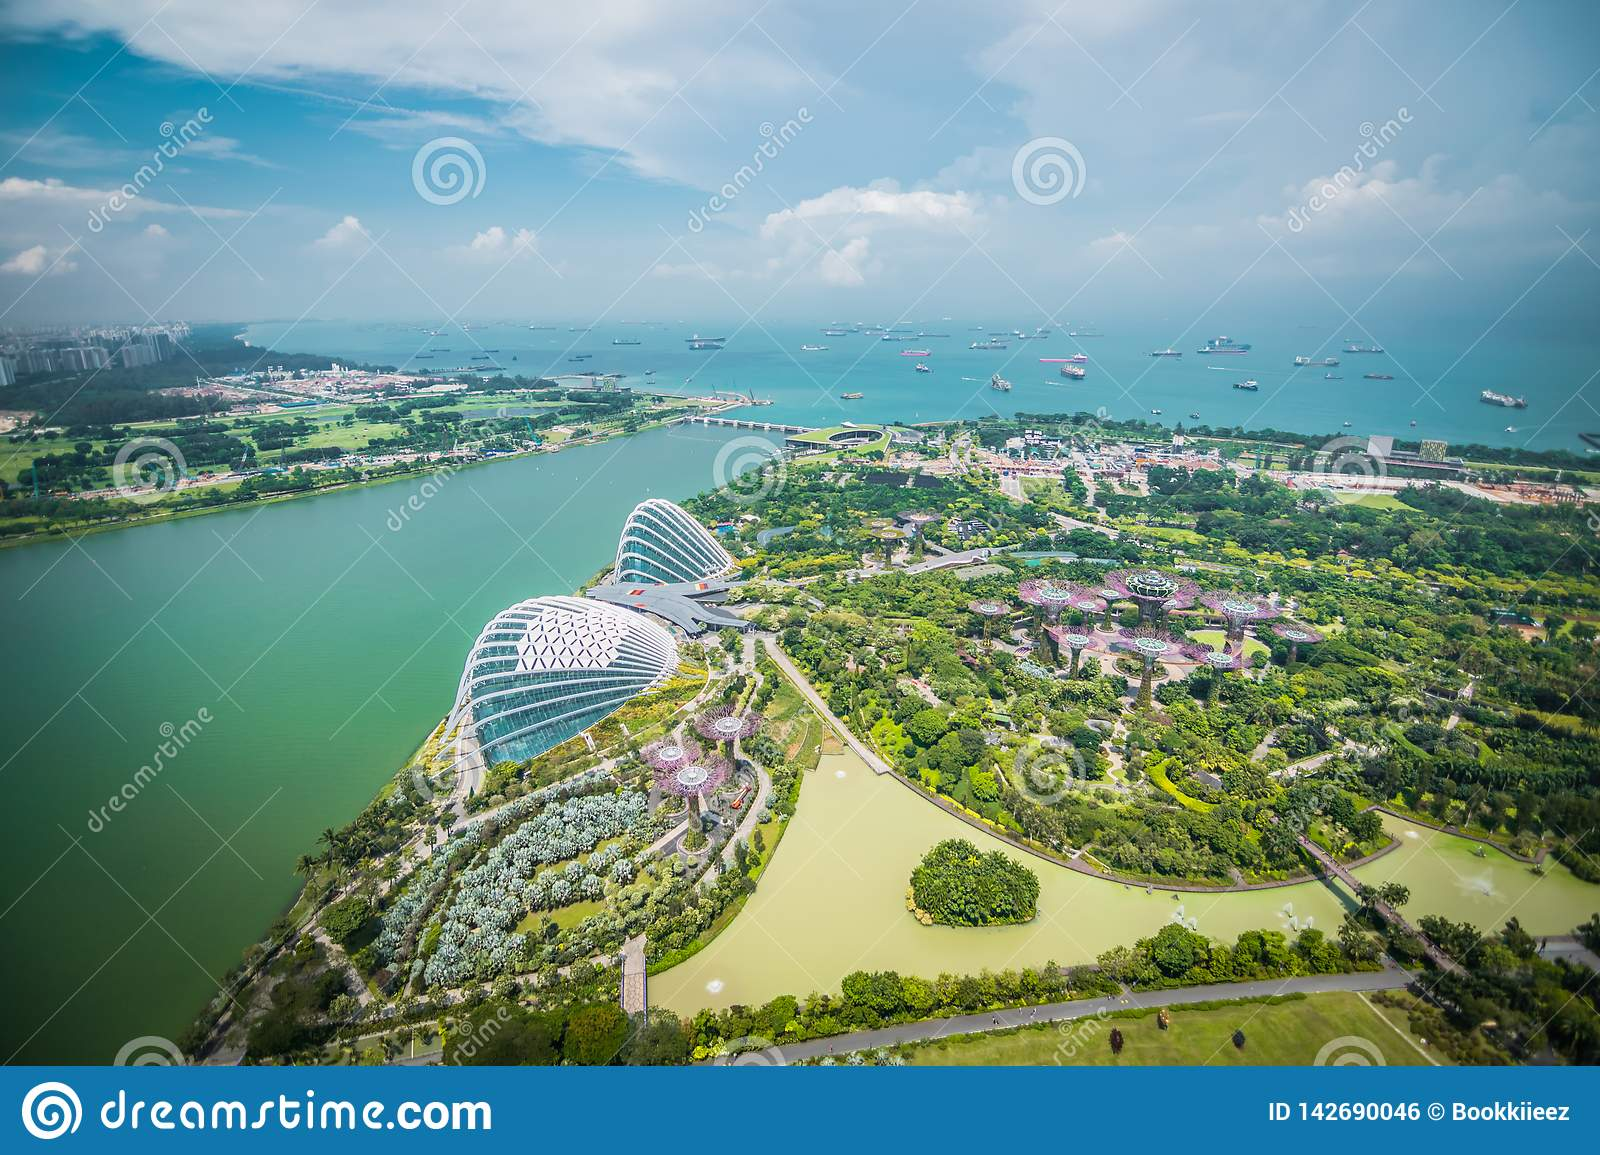 Aerial view of Super trees at Gardens by the Bay, Singapore.